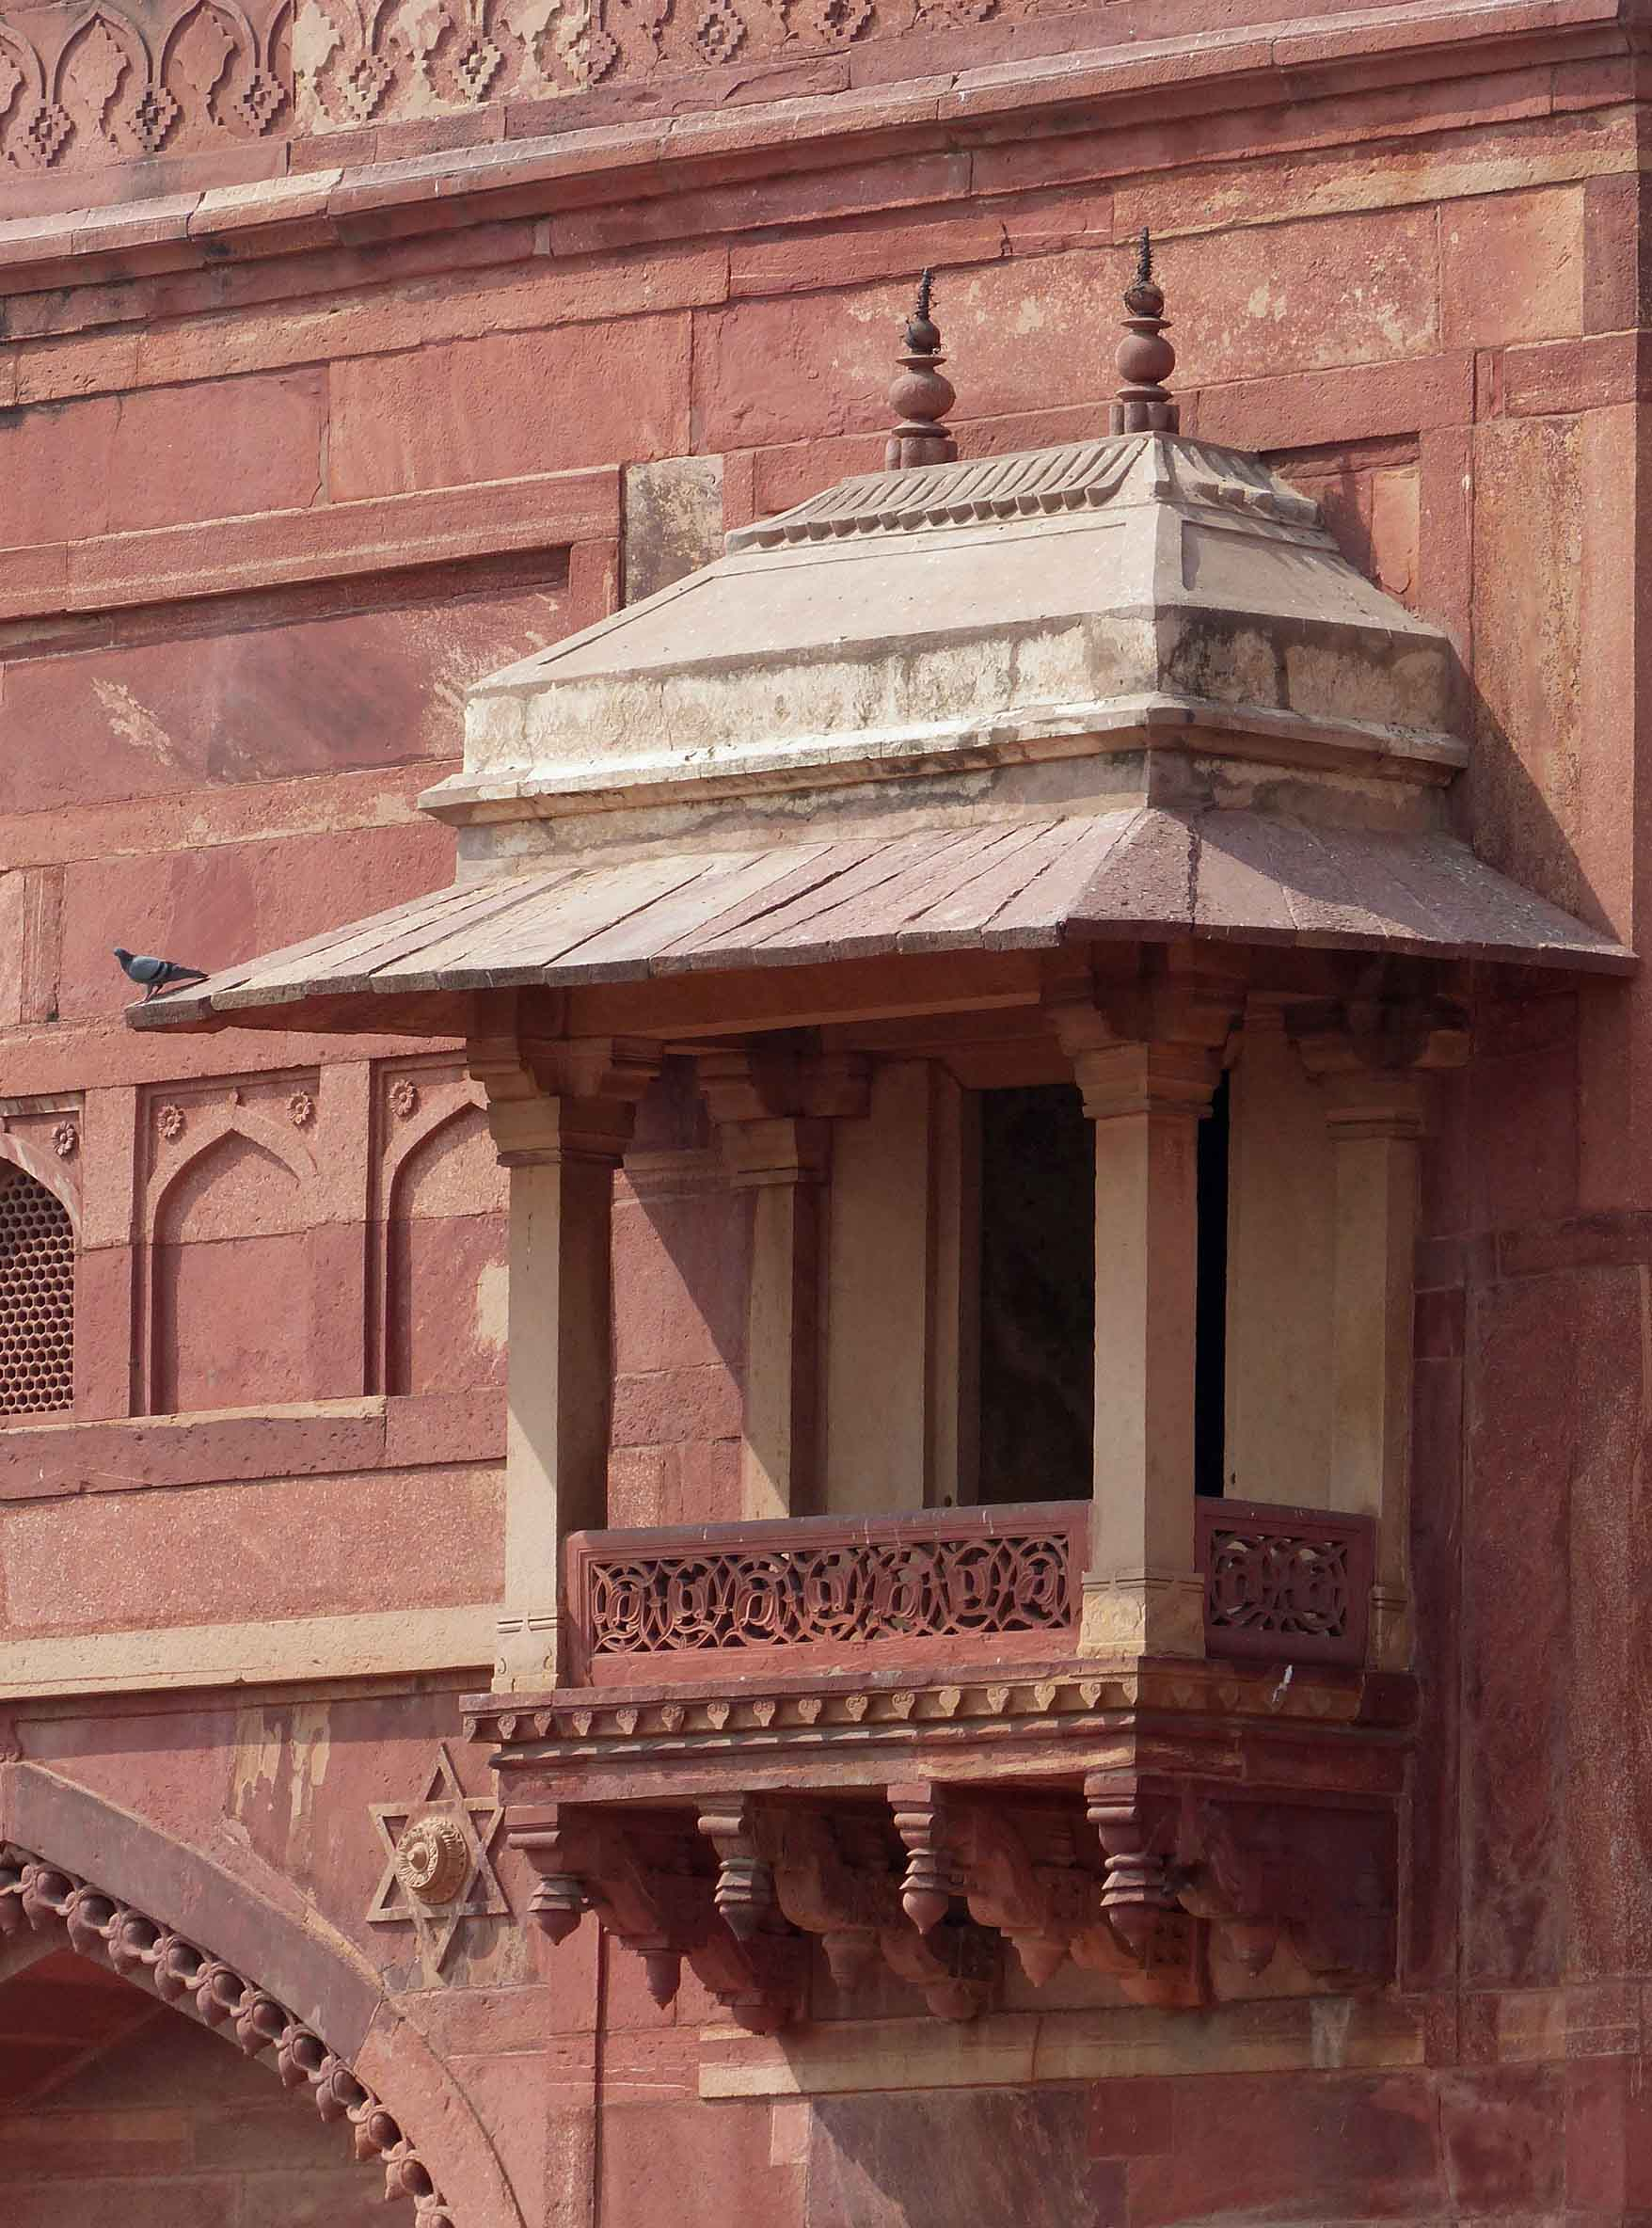 Red sandstone building with ornate balcony